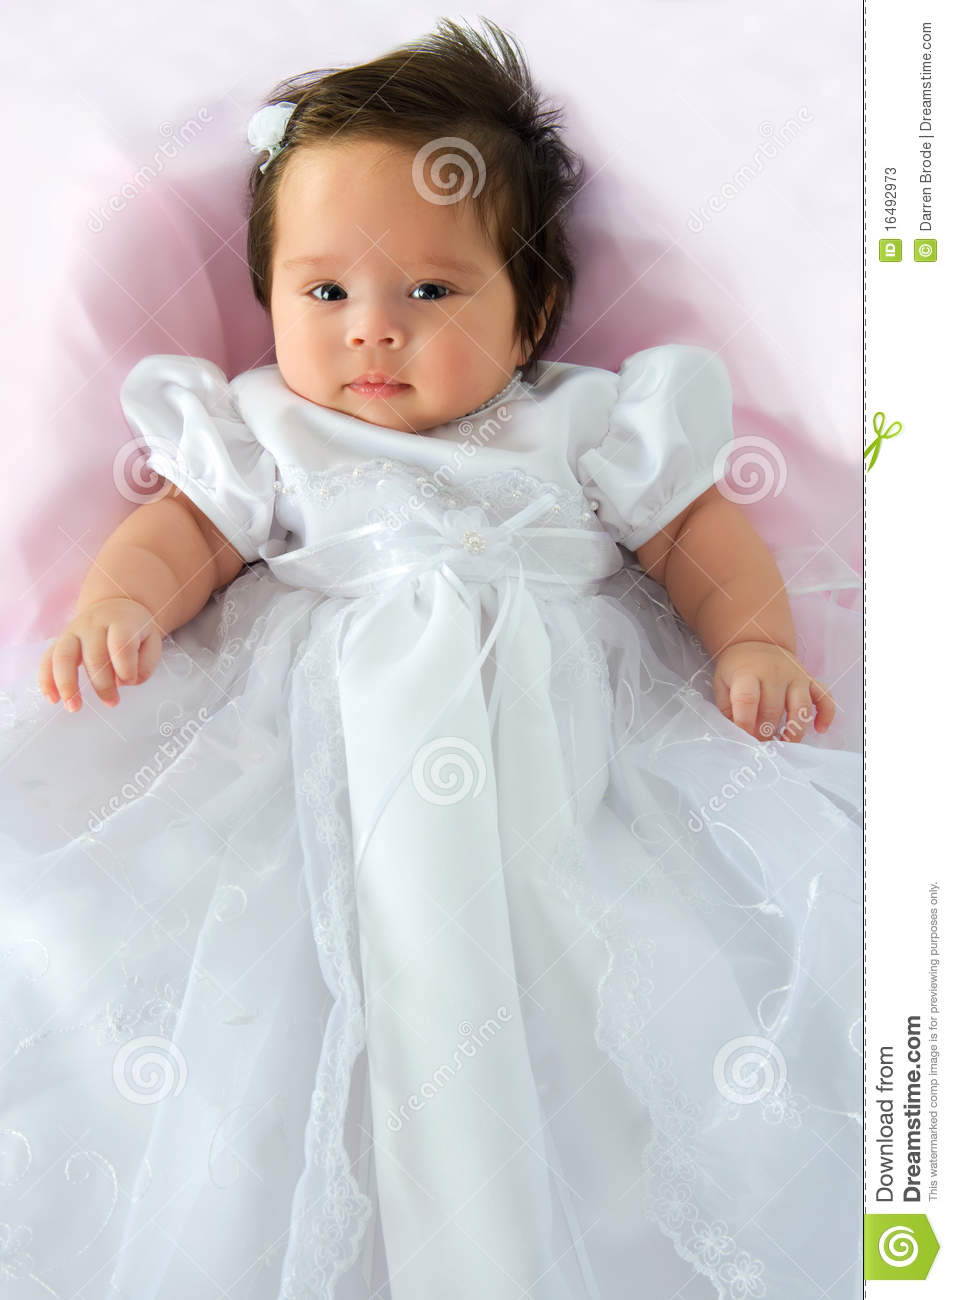 Newborn baby girl in a white baptism dress on a pink blanket.